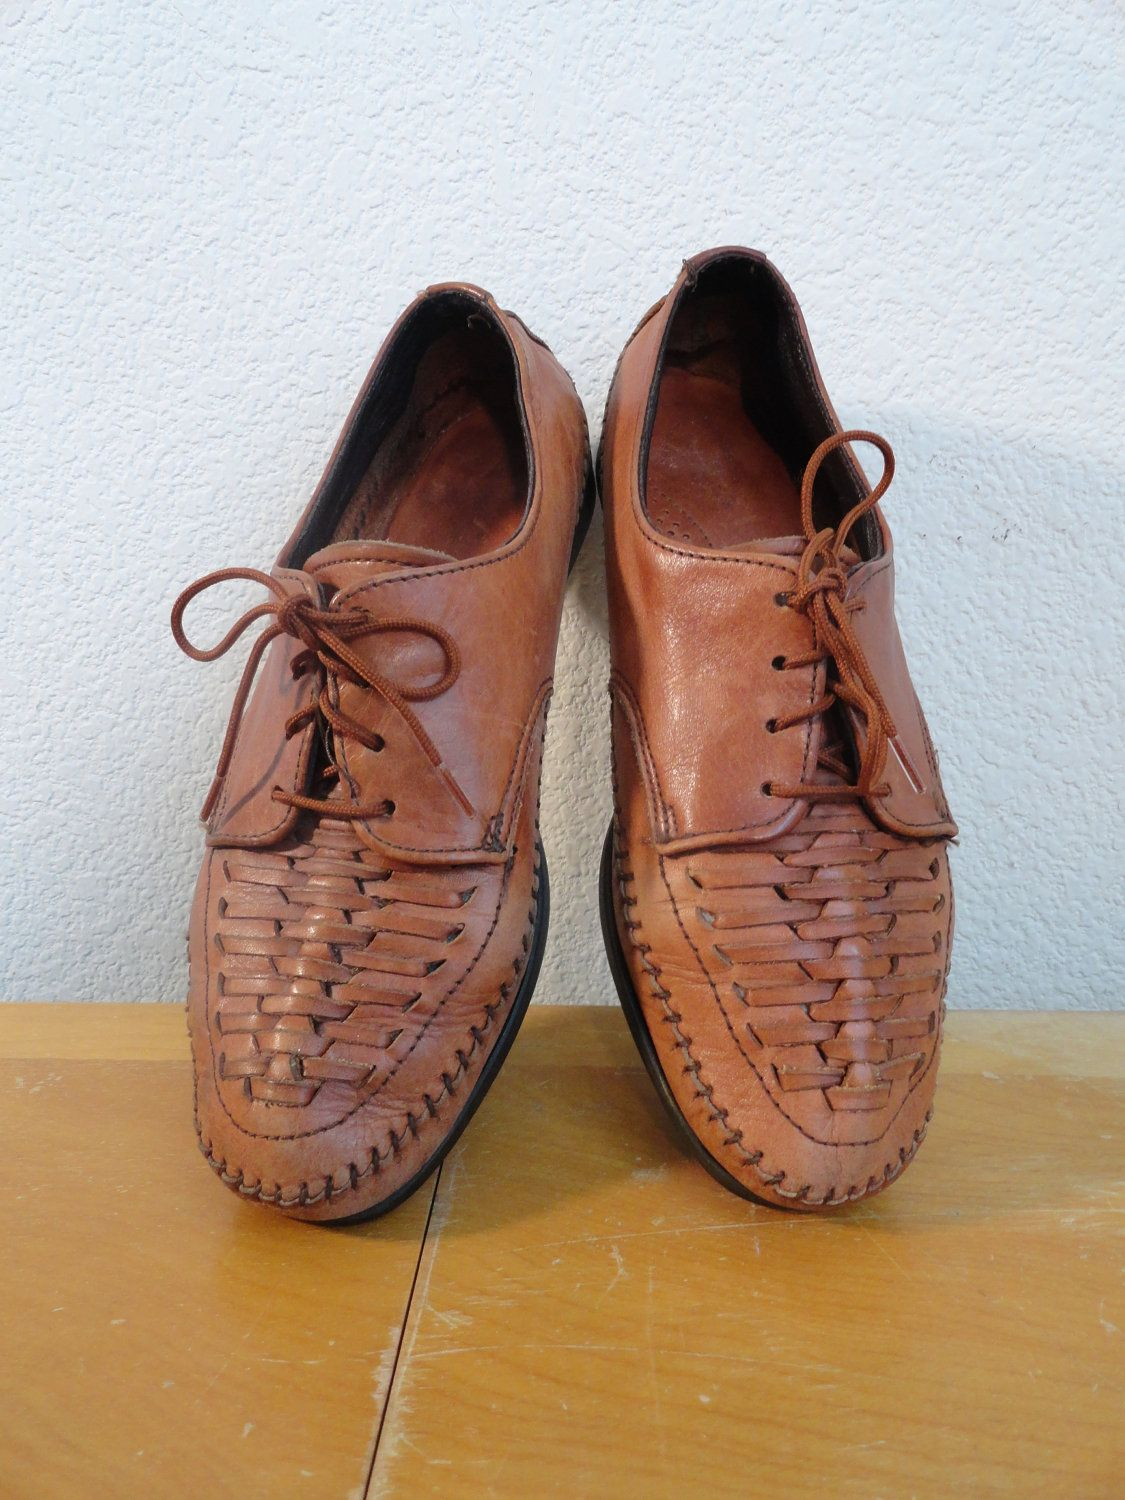 564d66ab694 Reserved For Rahma - Vintage Dexter Braided Leather Huarache Lace Up ...